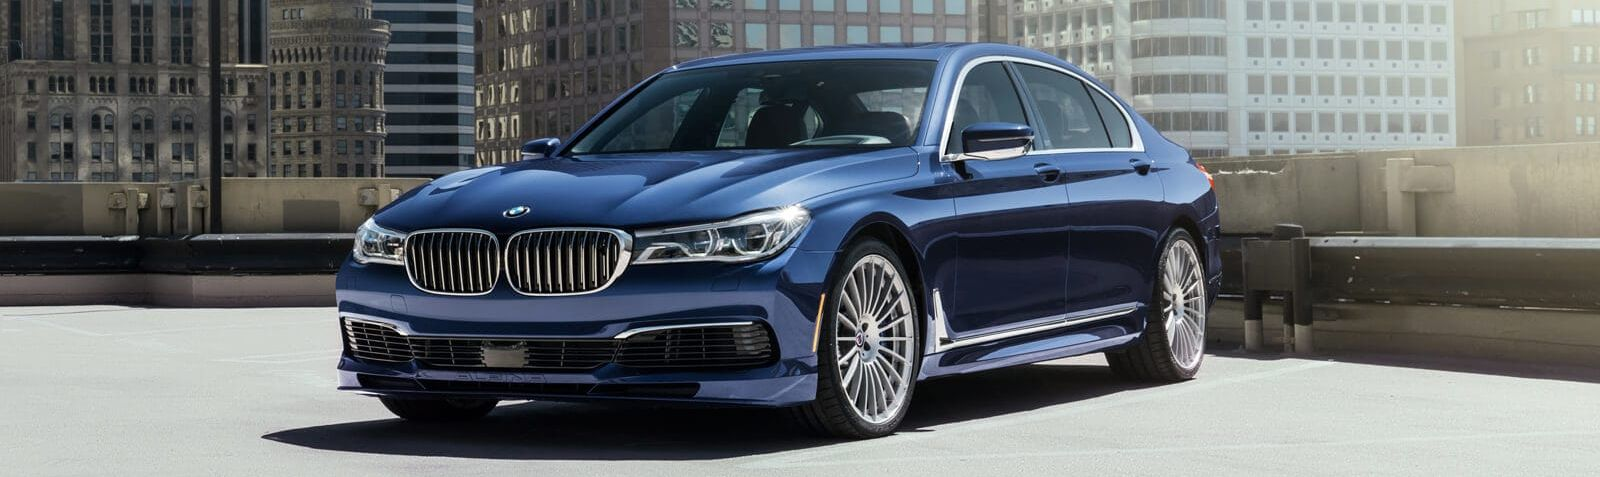 2019 BMW 7 Series for Sale near Vero Beach, FL